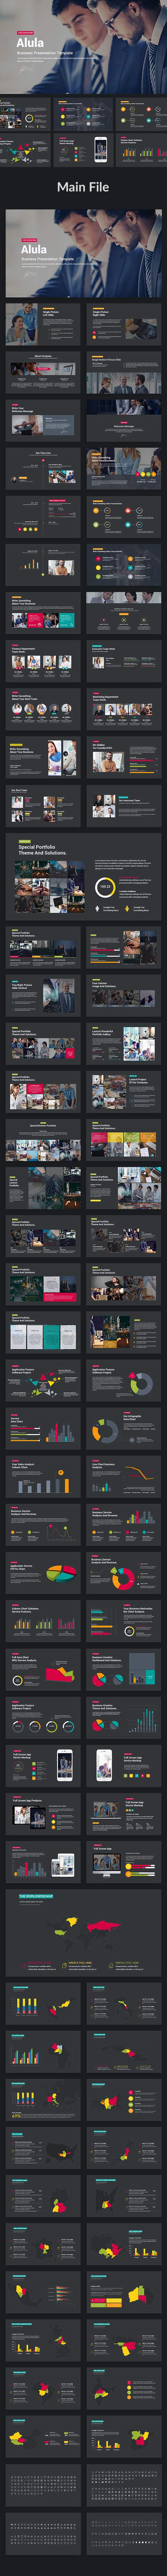 Alula - Business Powerpoint Template (PowerPoint Templates)